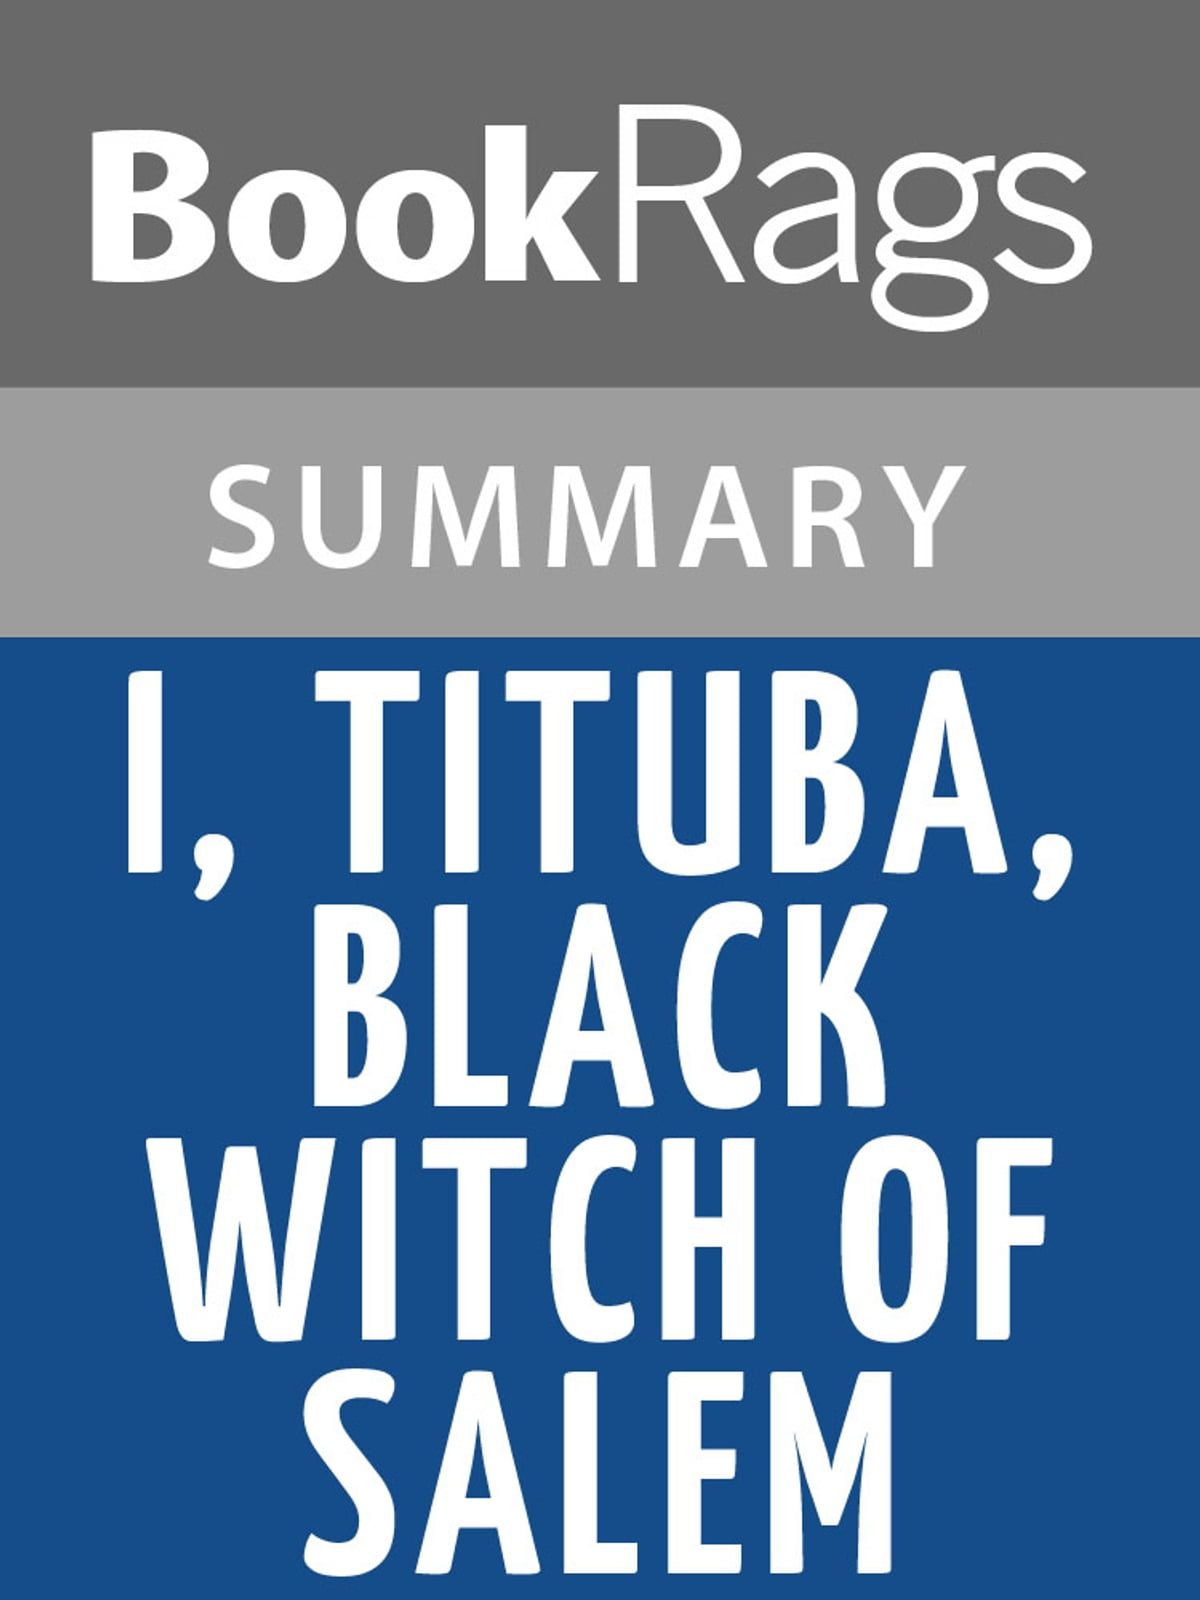 I tituba black witch of salem by maryse conde l summary study i tituba black witch of salem by maryse conde l summary study guide ebook by bookrags 1230000204741 rakuten kobo fandeluxe Image collections